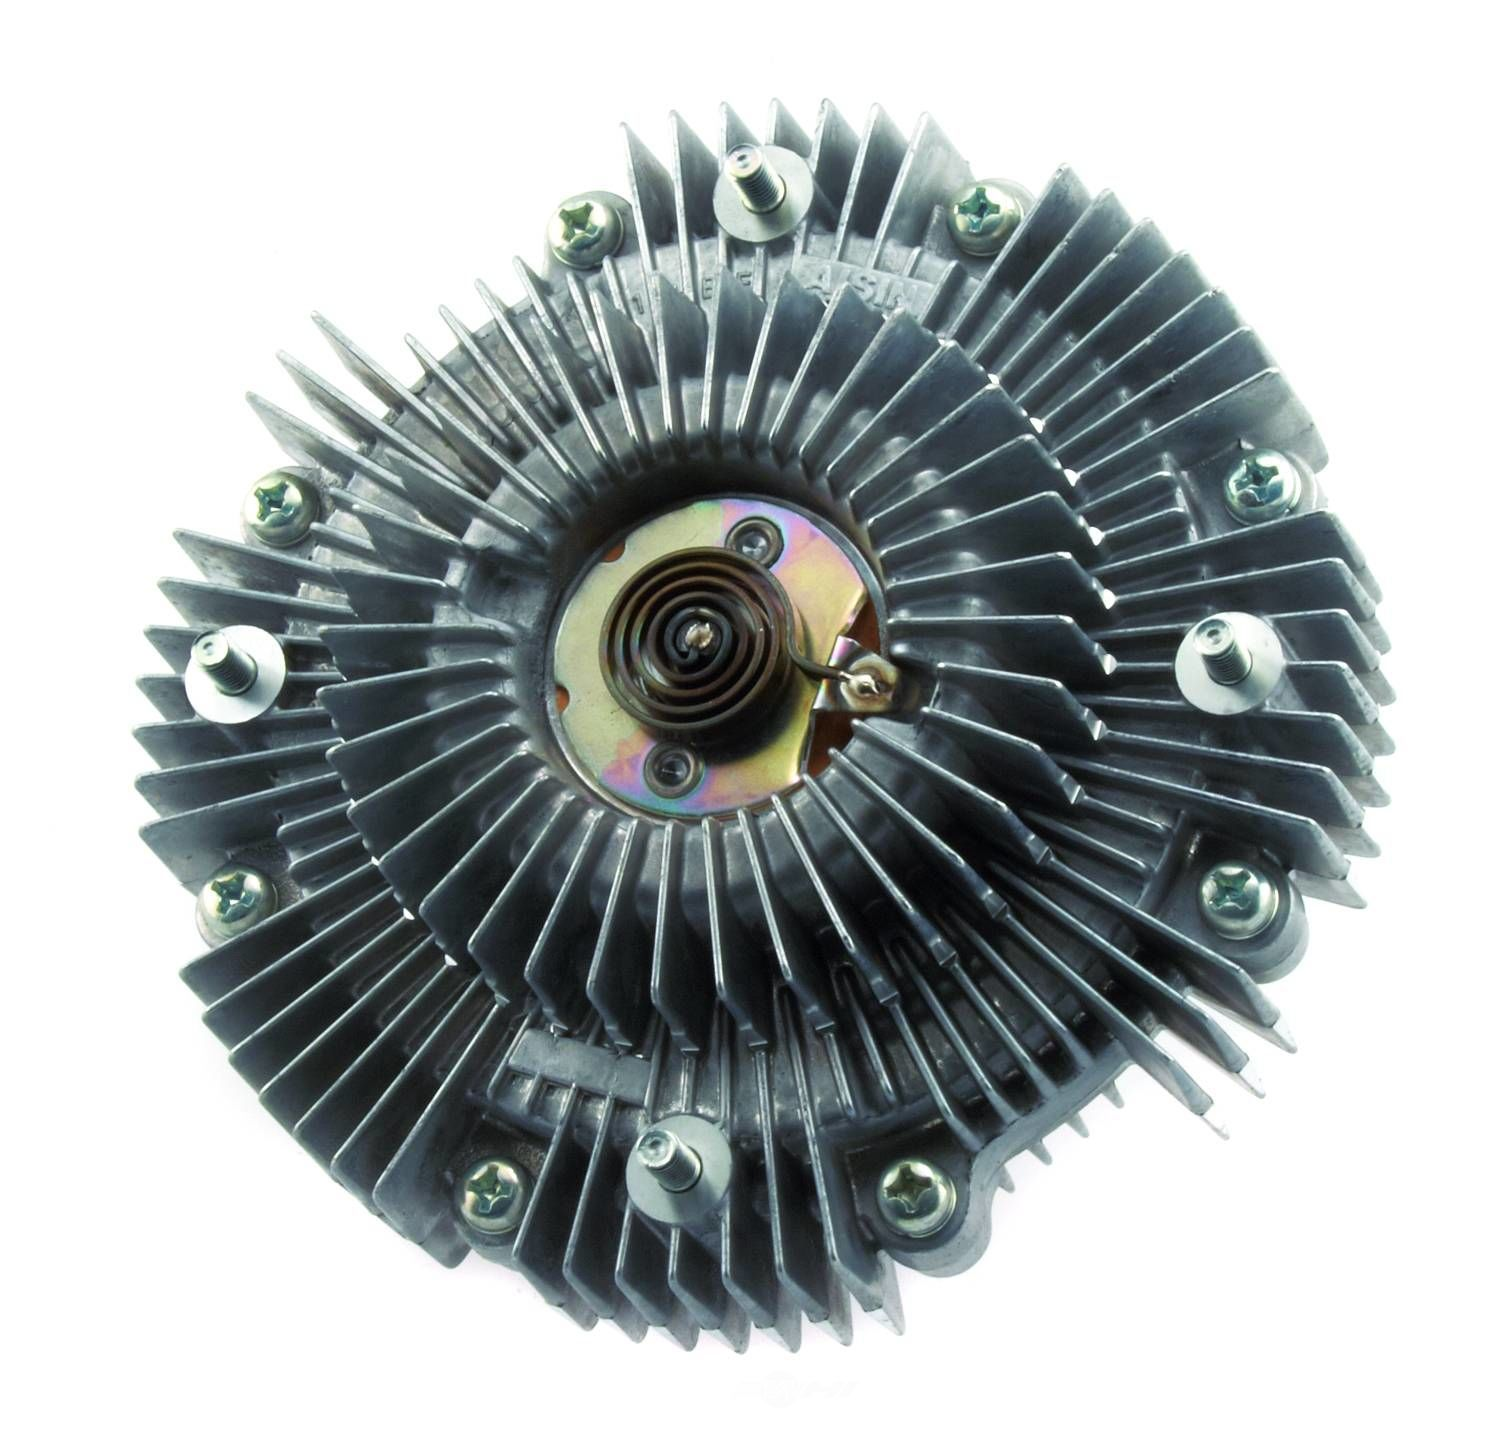 AISIN WORLD CORP. OF AMERICA - Engine Cooling Fan Clutch - AIS FCT-004